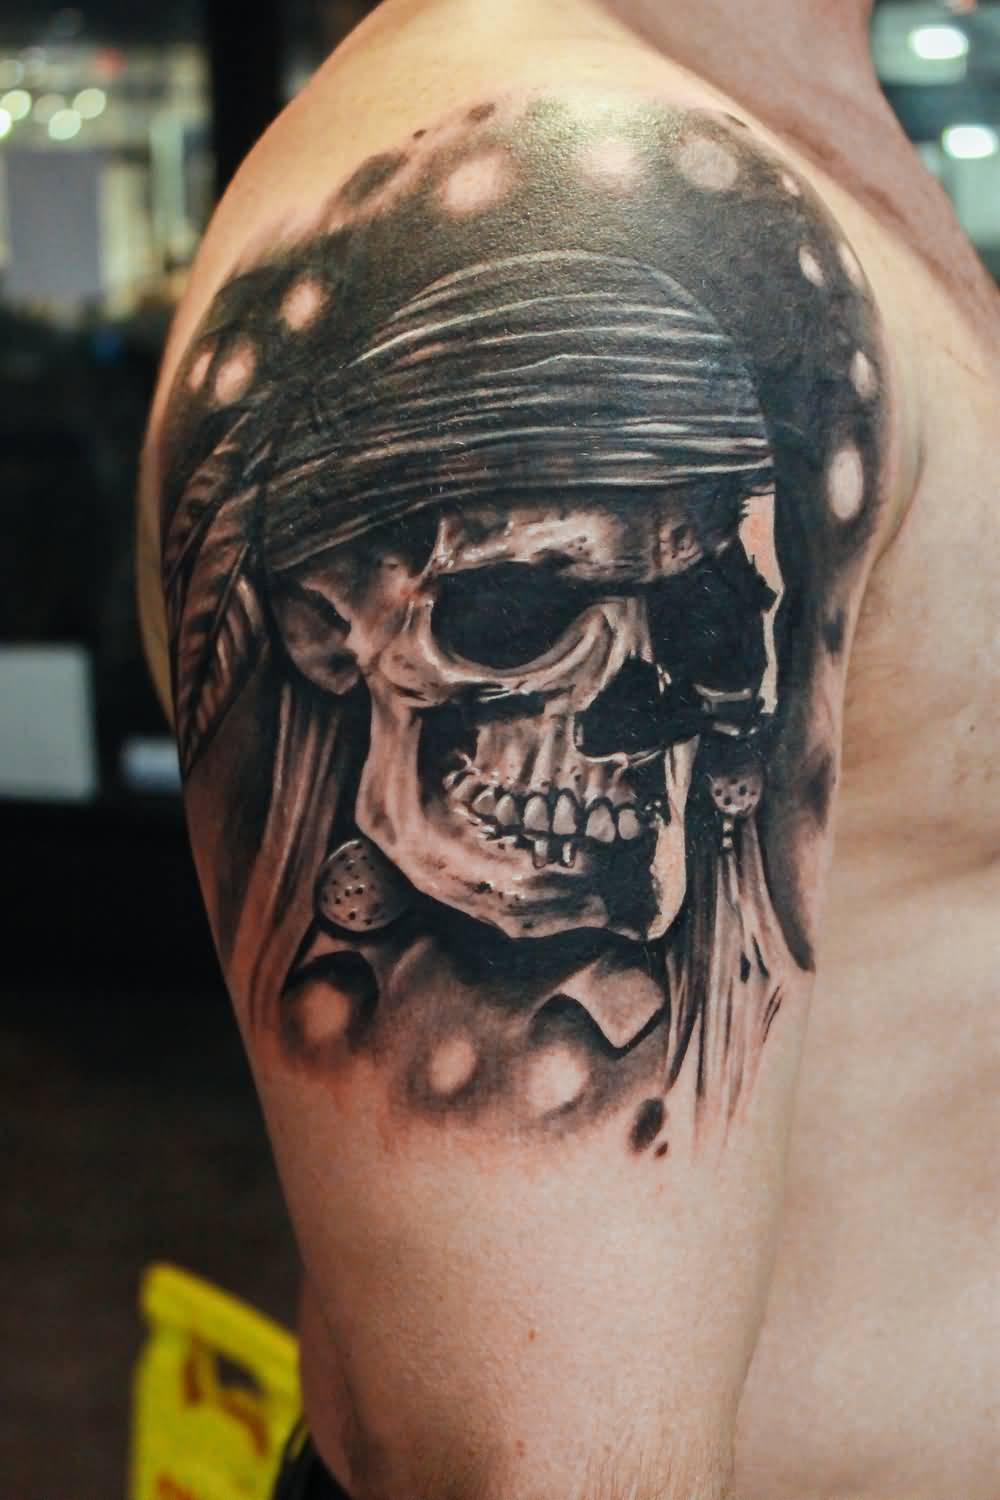 Awesome Shoulder Tattoos - Tattoo Collections